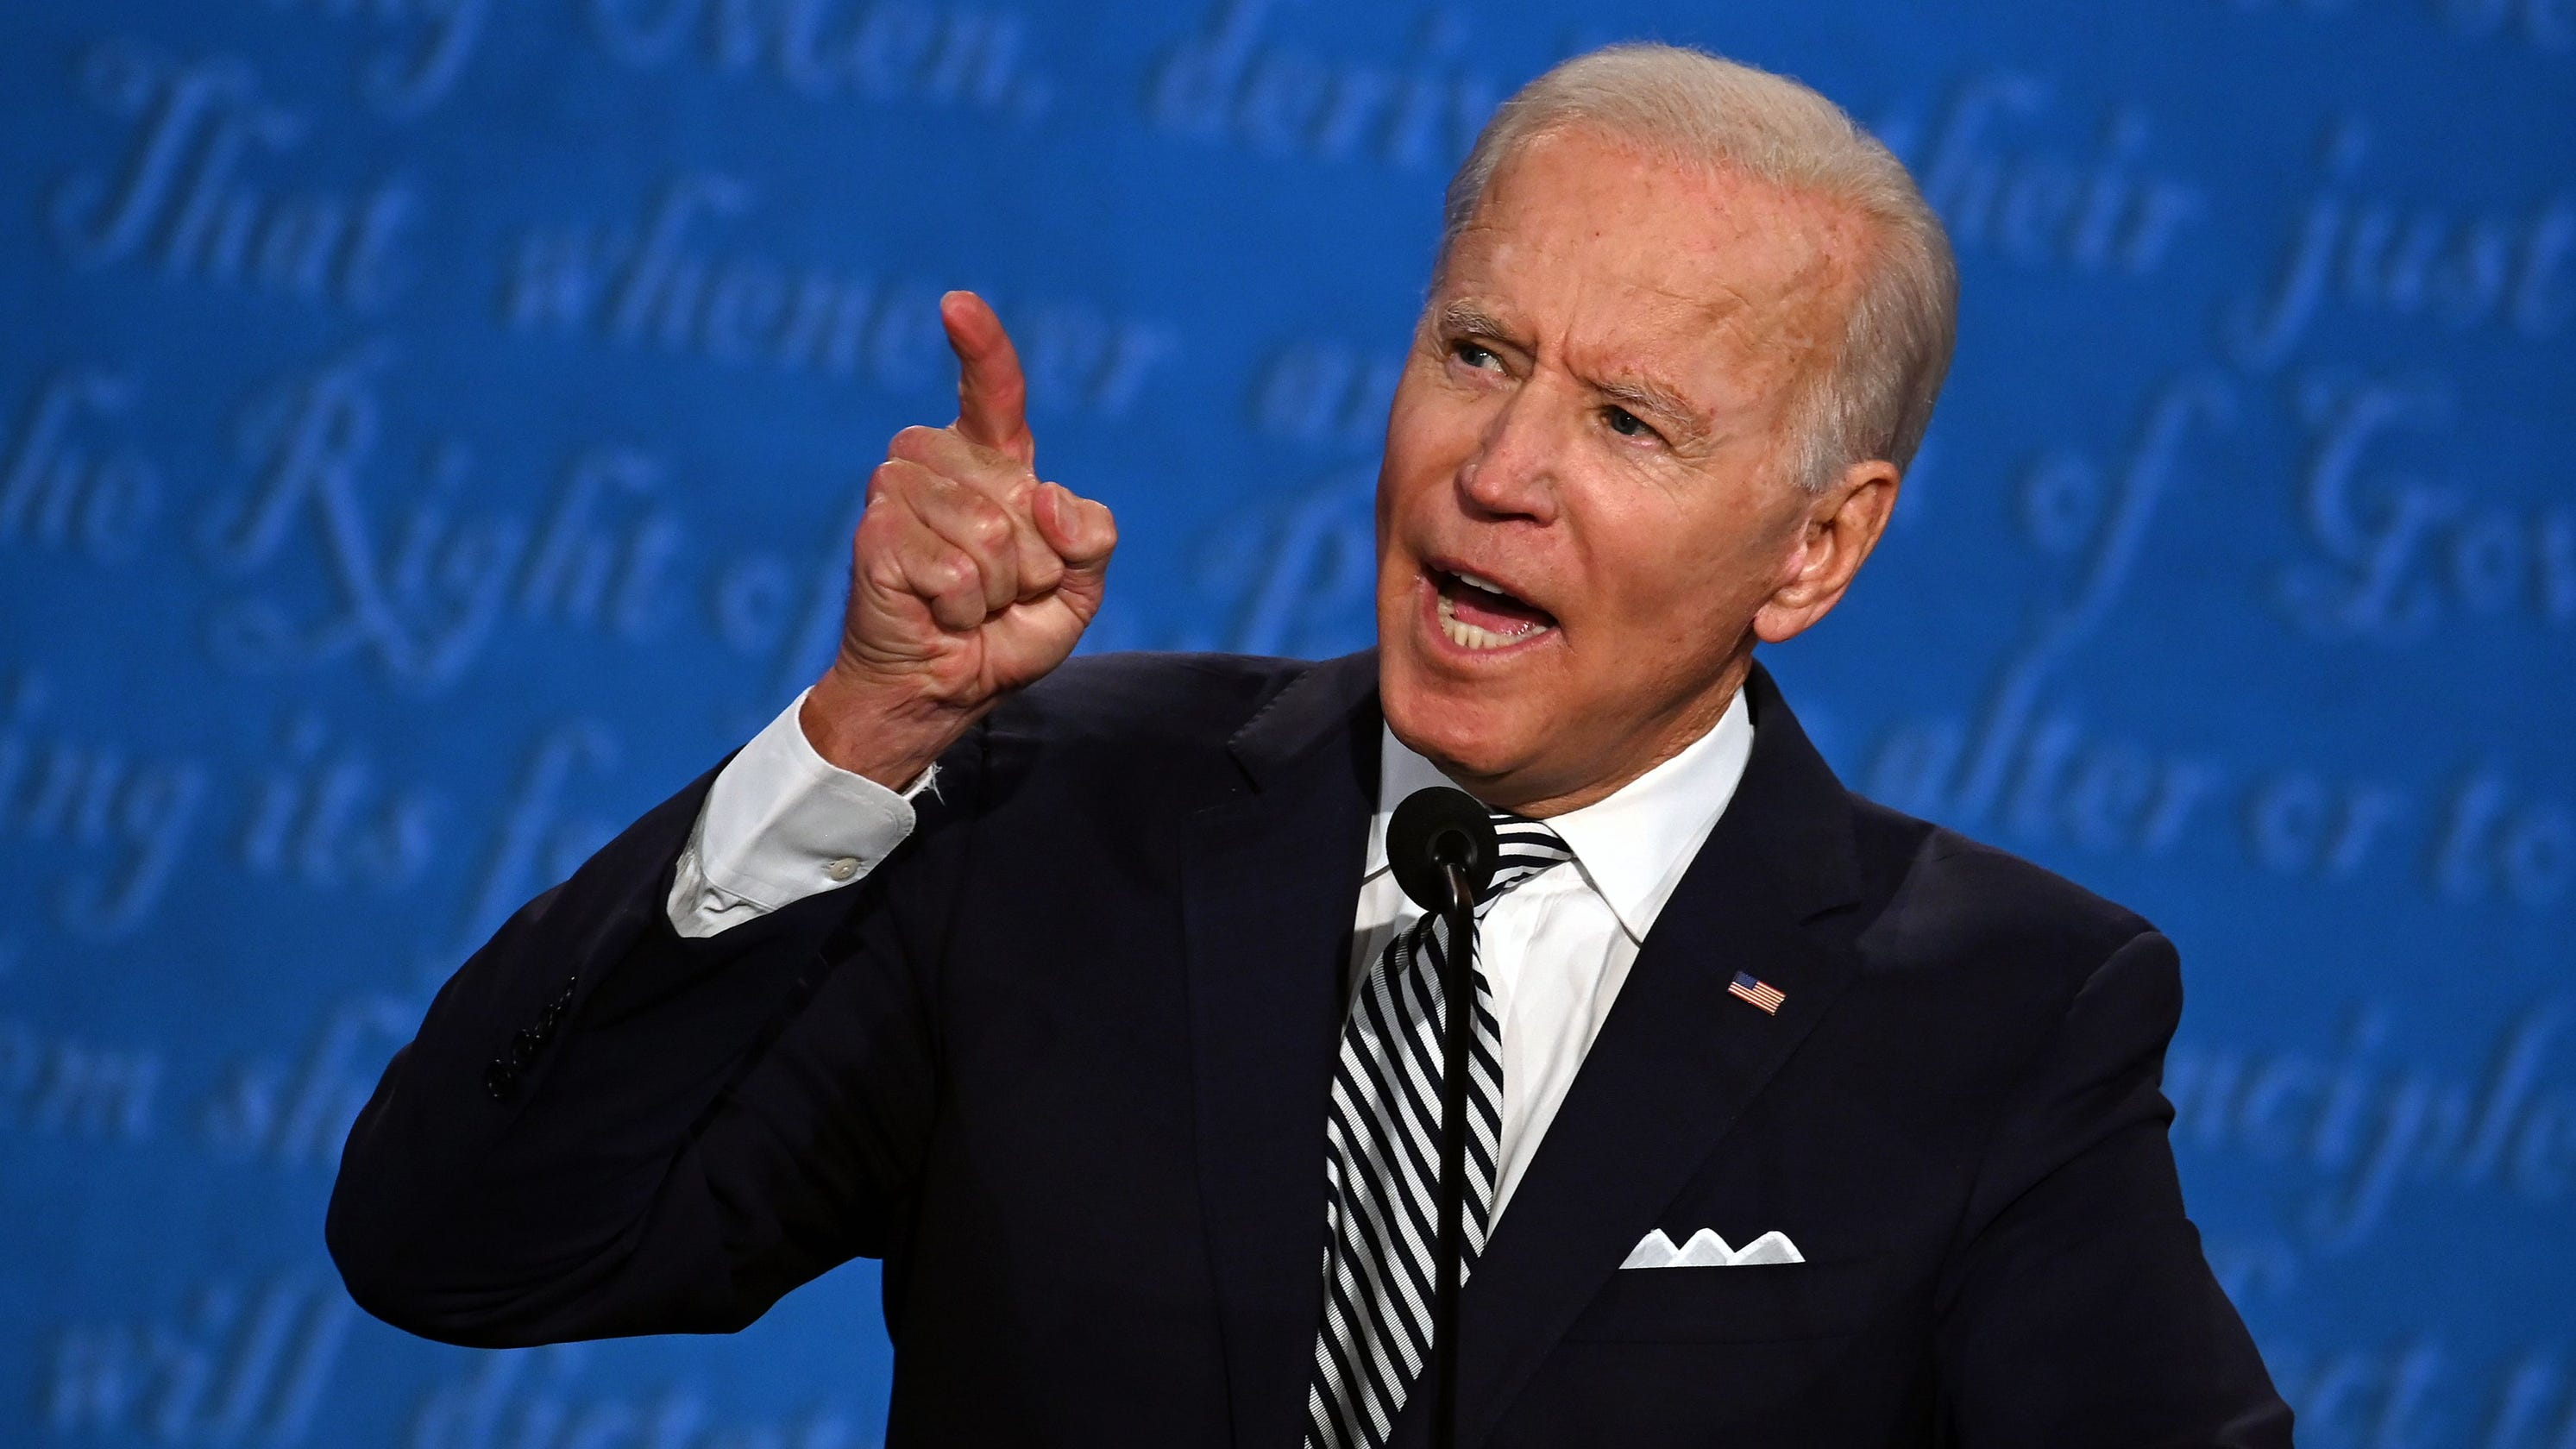 No, Joe Biden did not wear a wire during the first presidential debate